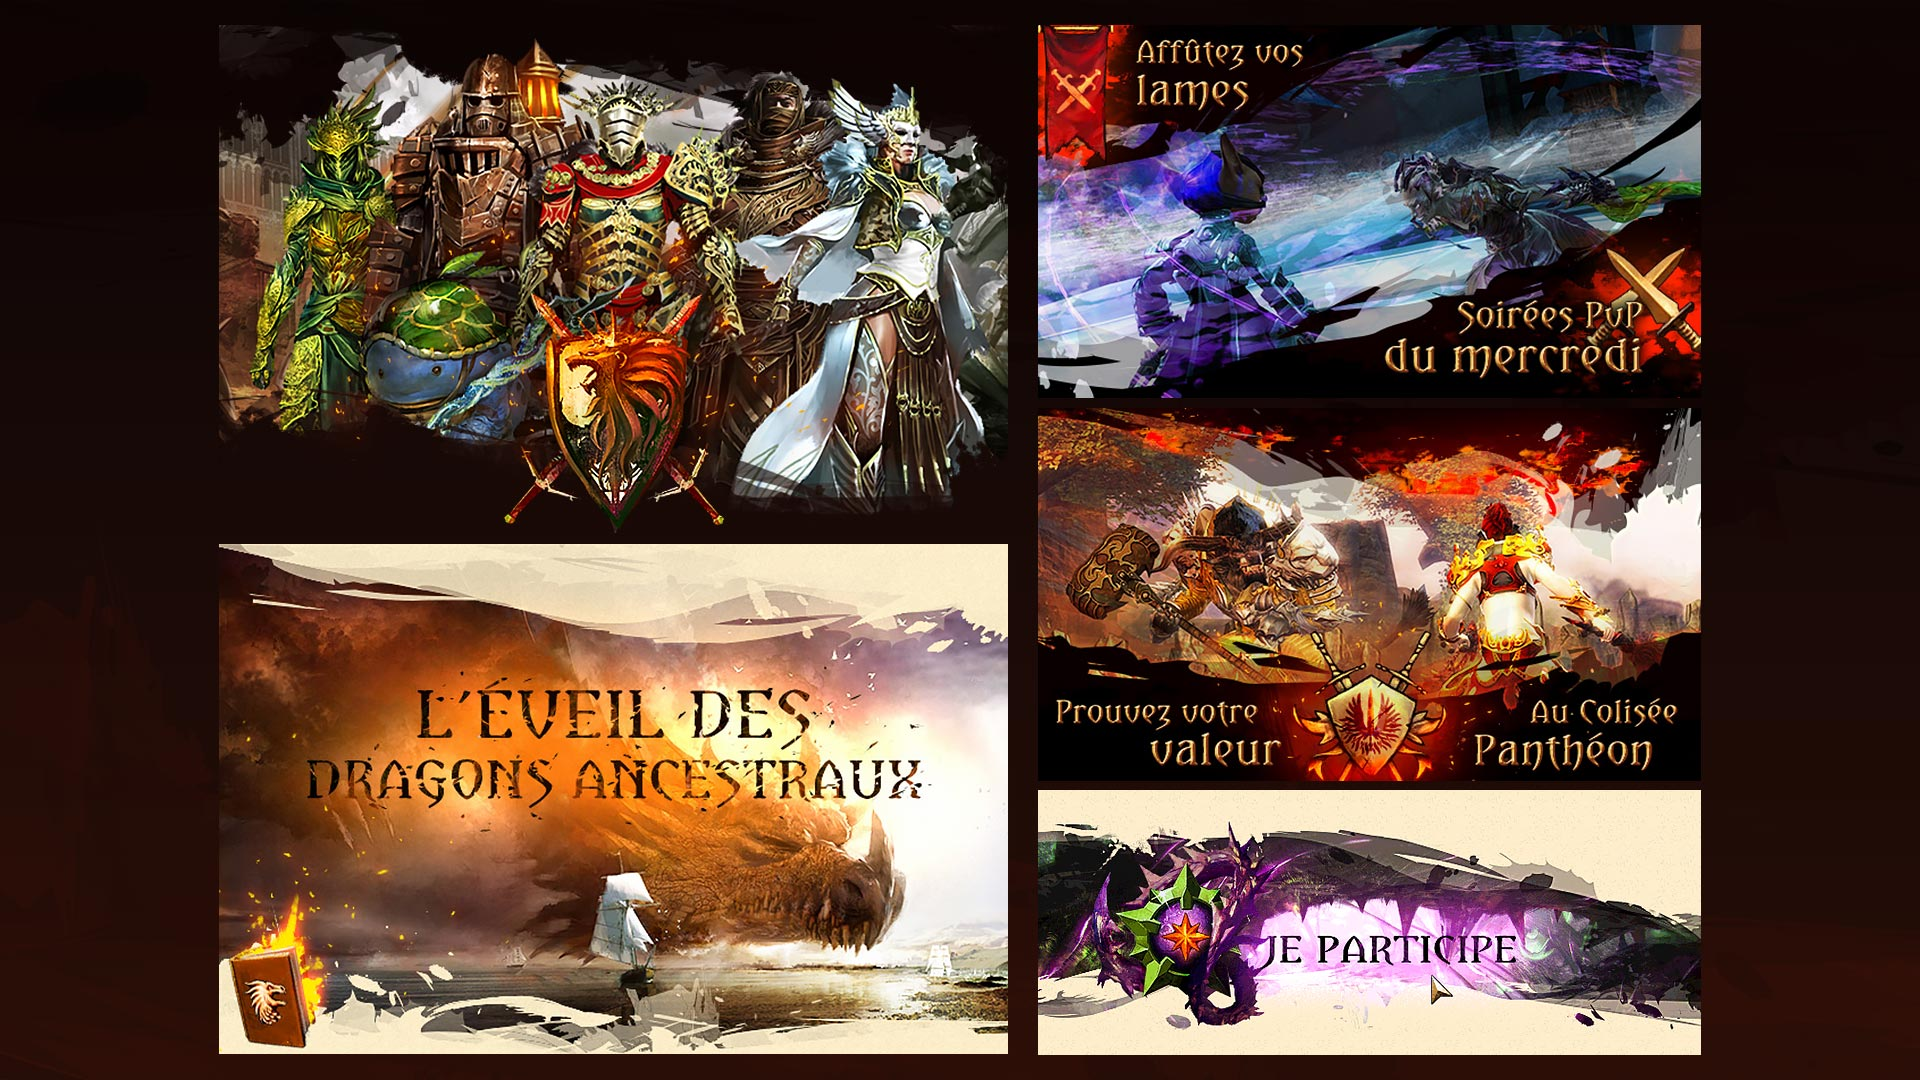 Guild Wars 2 Community and Partnership - Banners